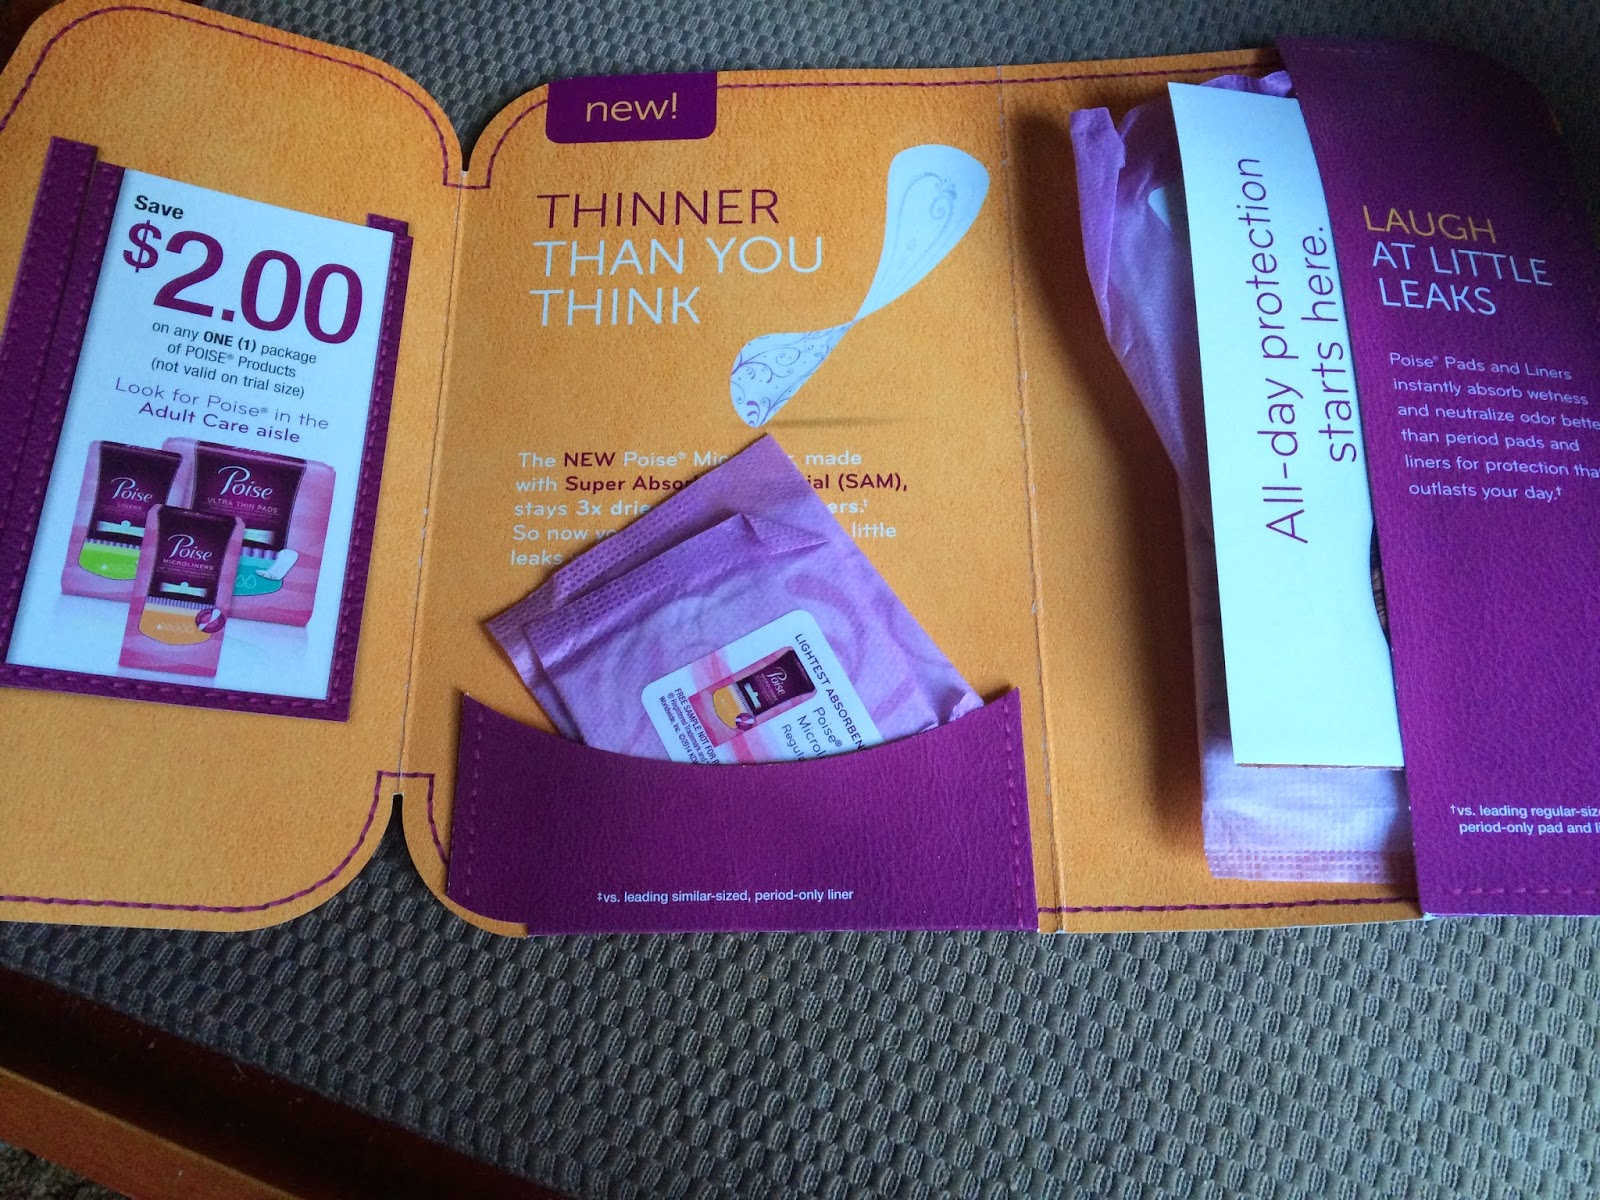 photograph regarding Poise $3.00 Printable Coupon named discount codes for poise panty liners